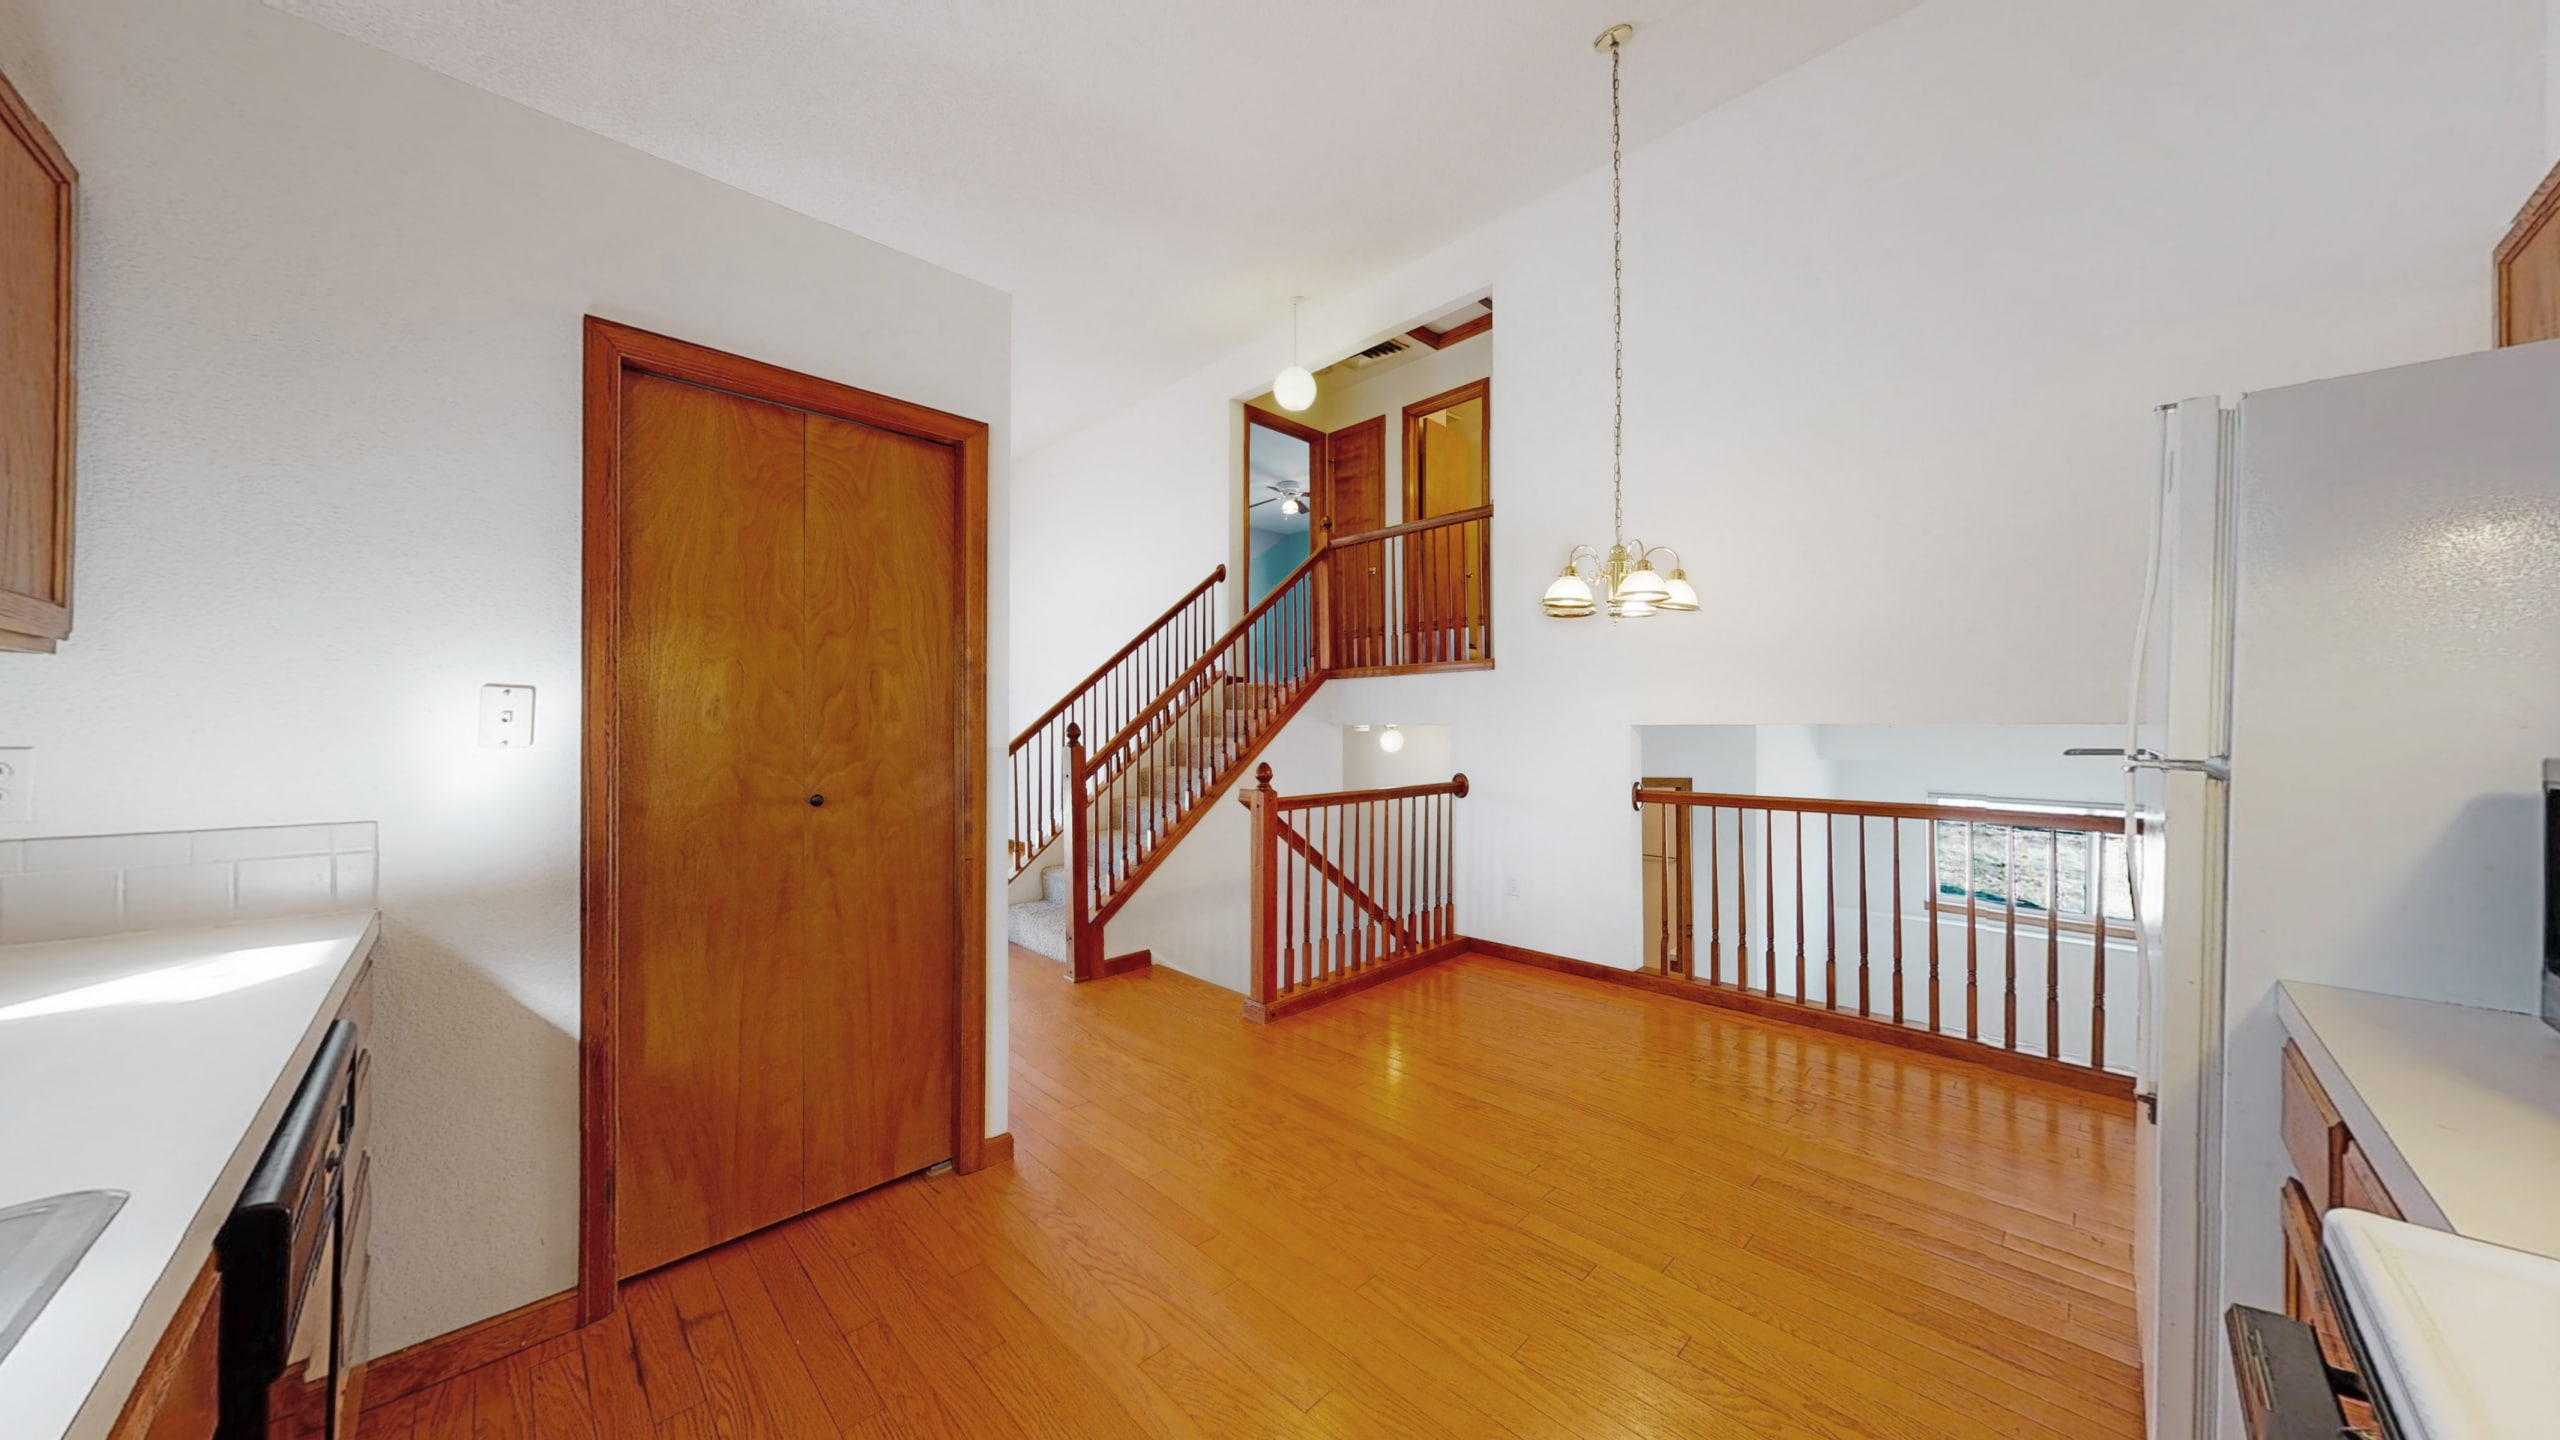 Brighton house for sale with eat-in kitchen open floor plan